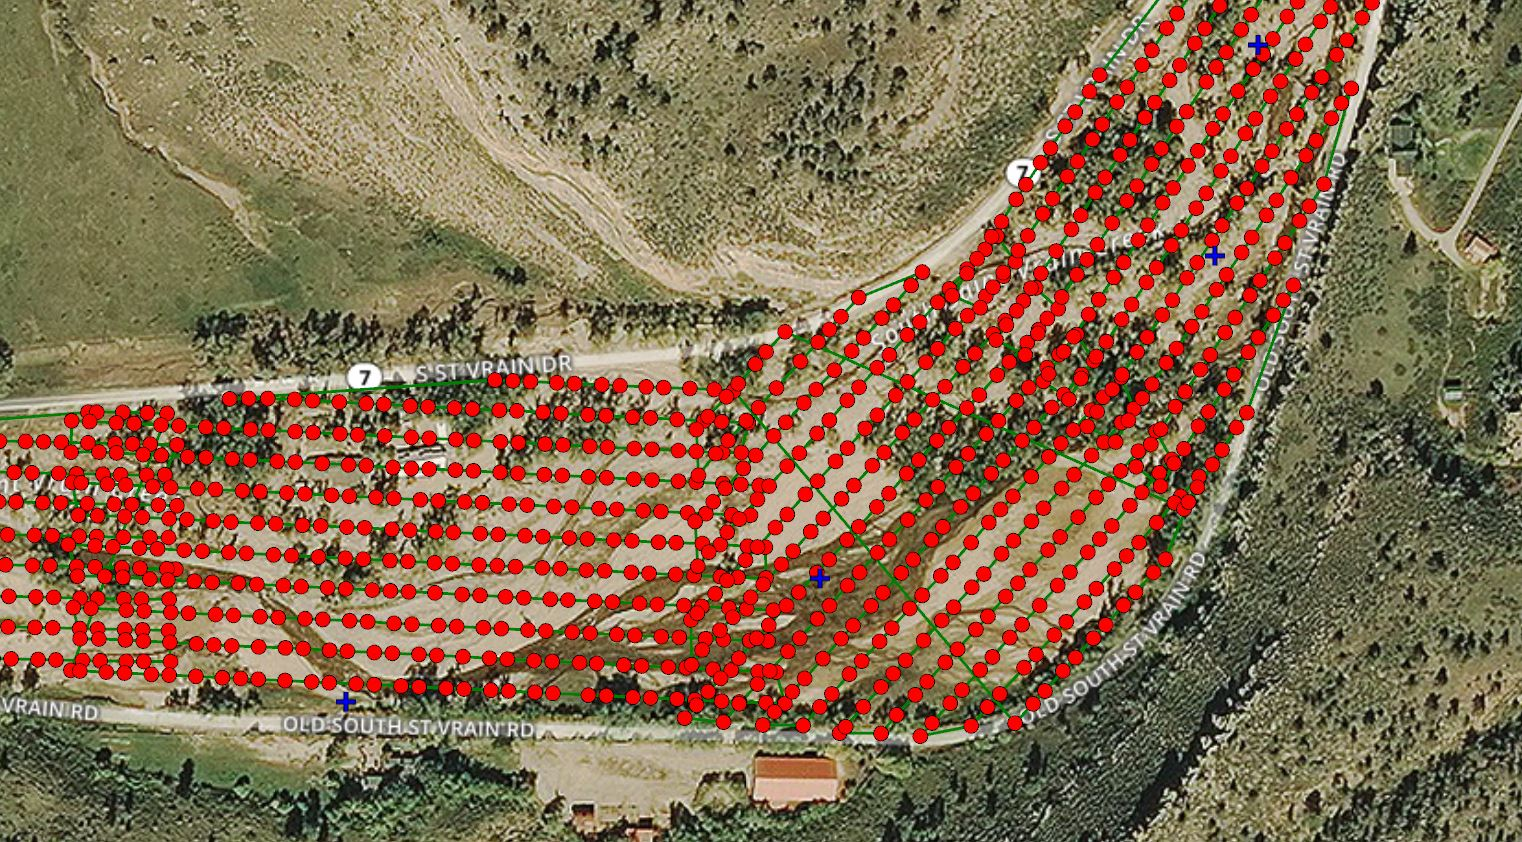 Photo points from drone flights